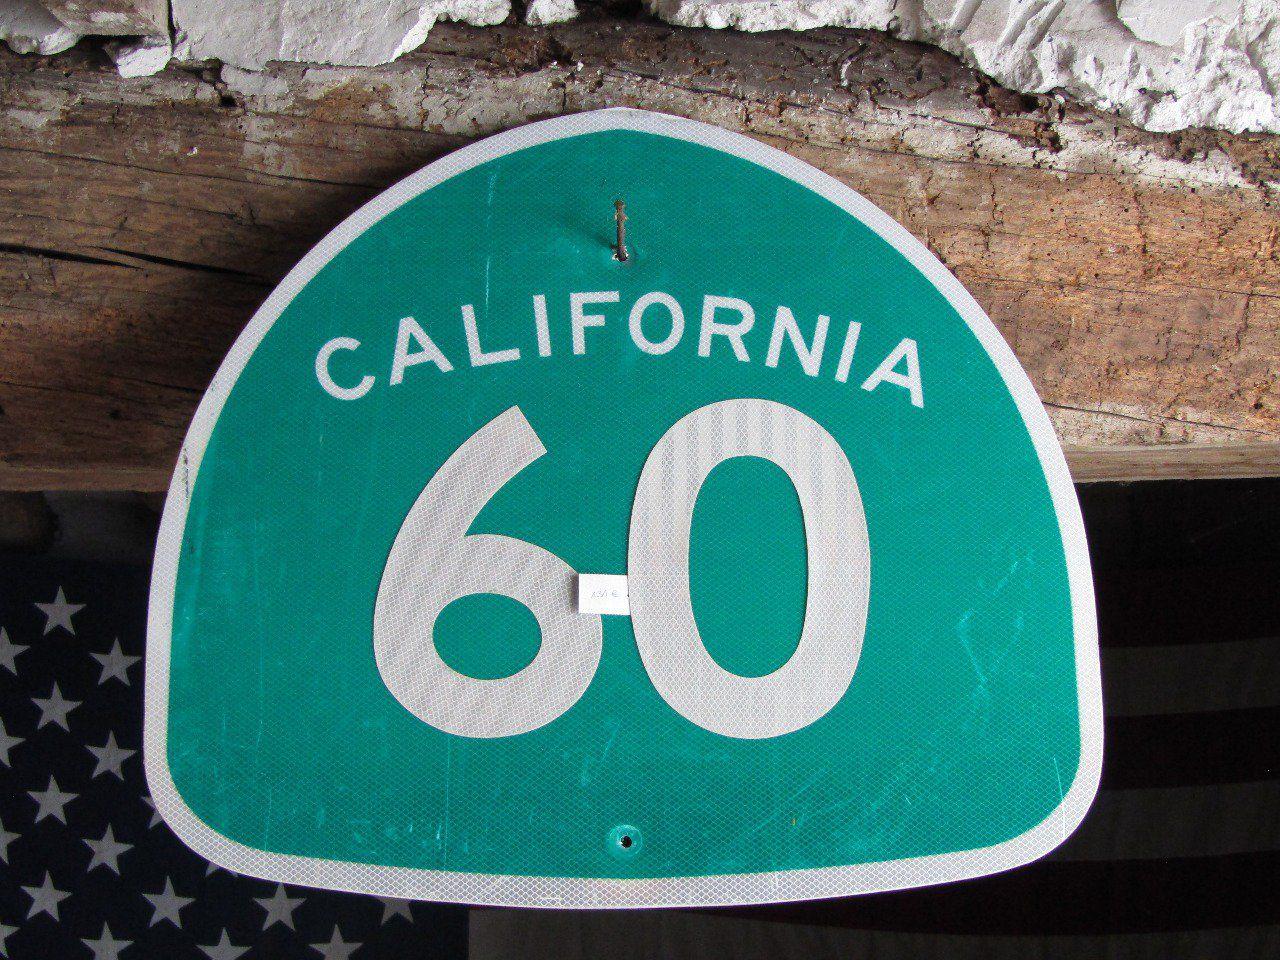 Plaque de rue California 60